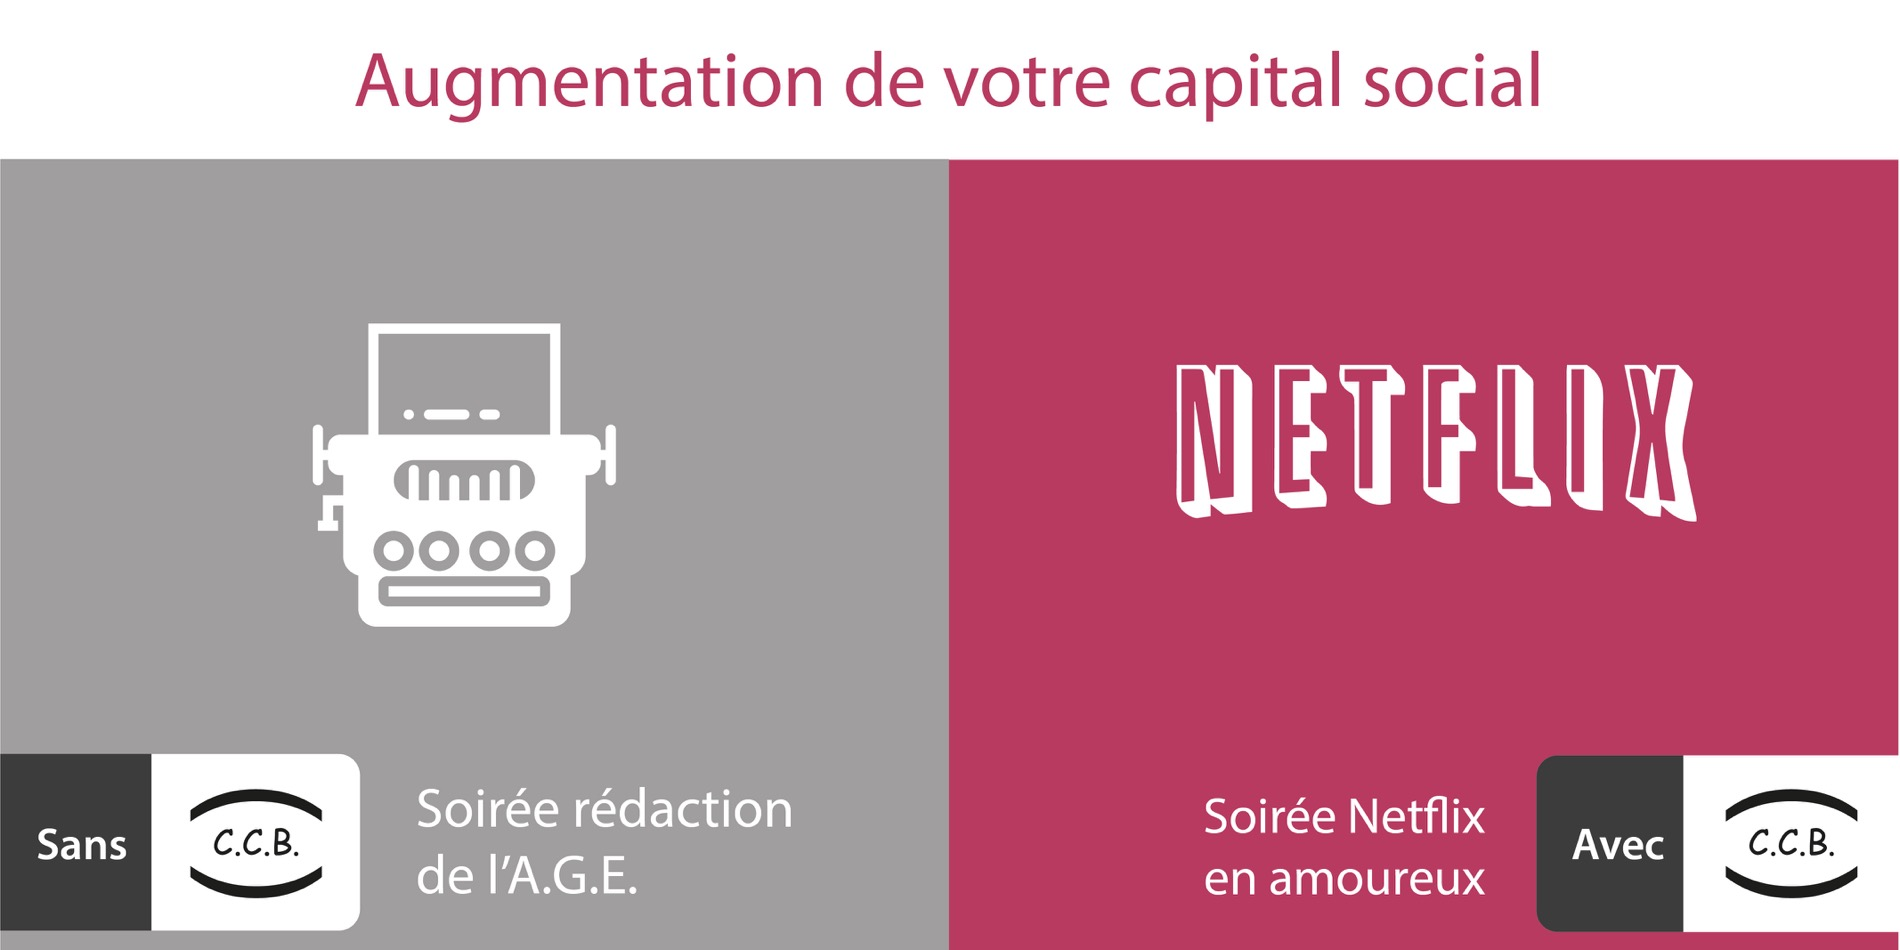 Augmentation de votre capital social